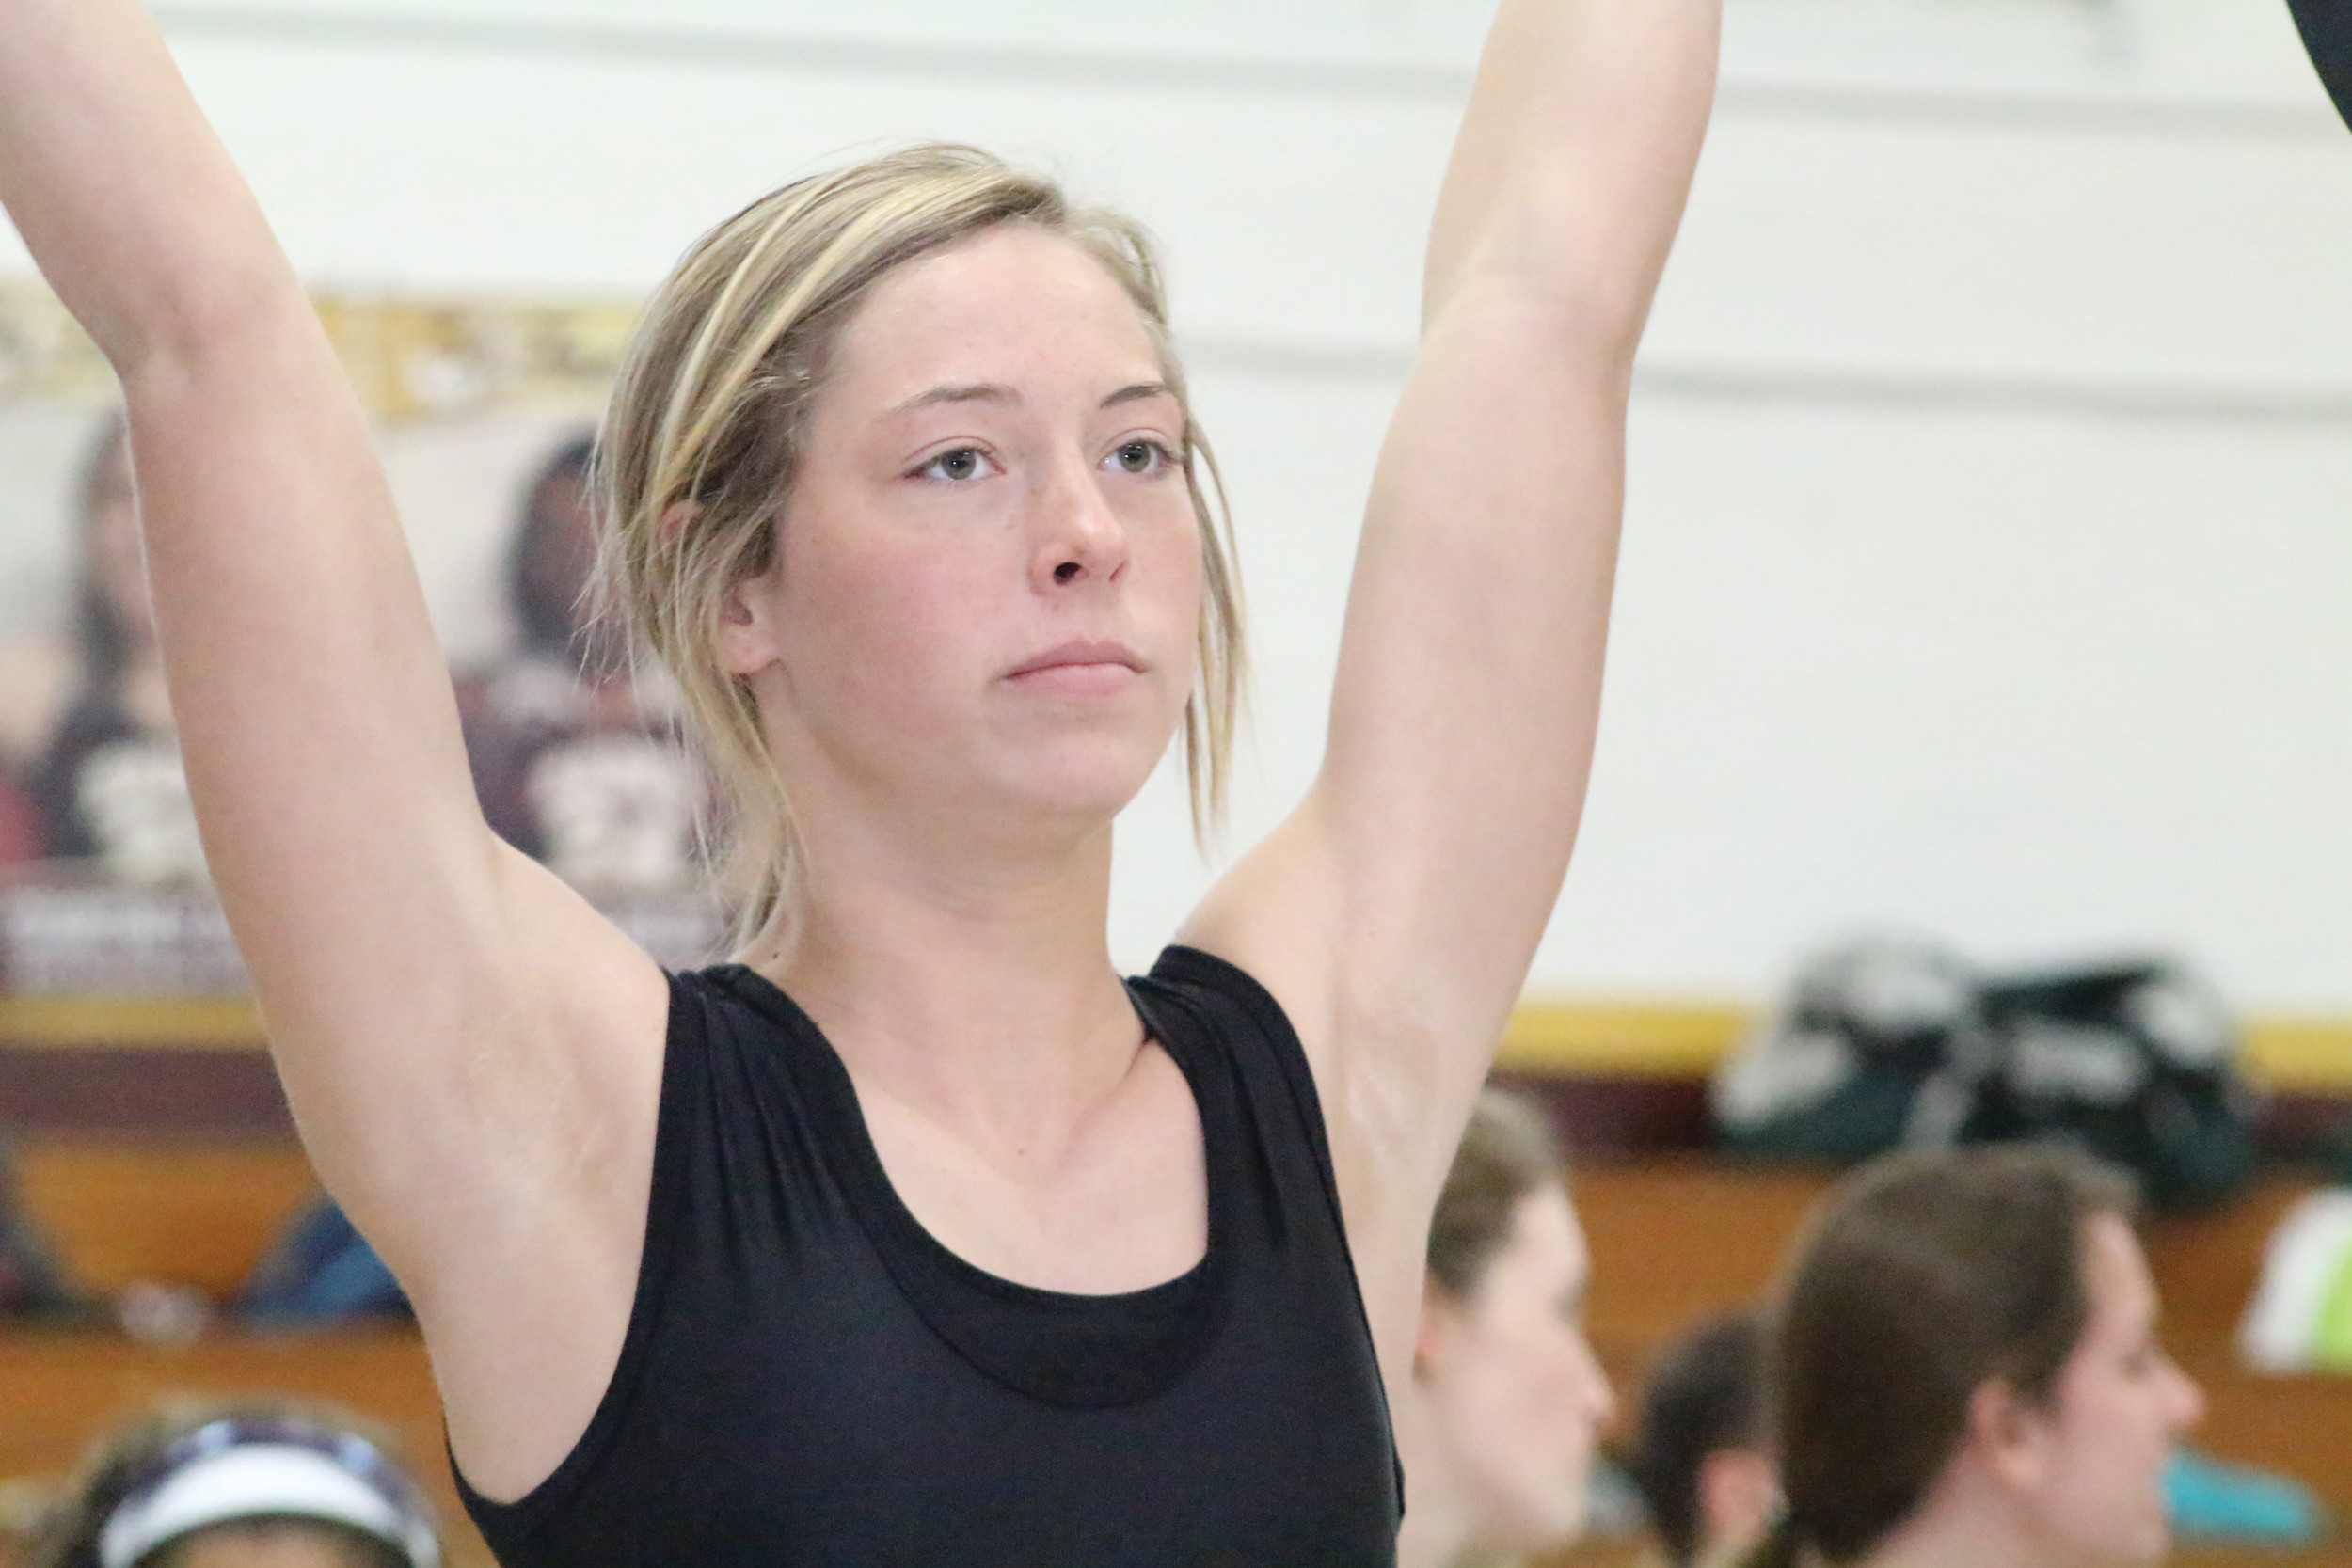 Middleburg High's Emma Weiskopf has become a force to be aware of with her 15 pound winning margin over Oakleaf's Selena Shore in the 119 pound division.